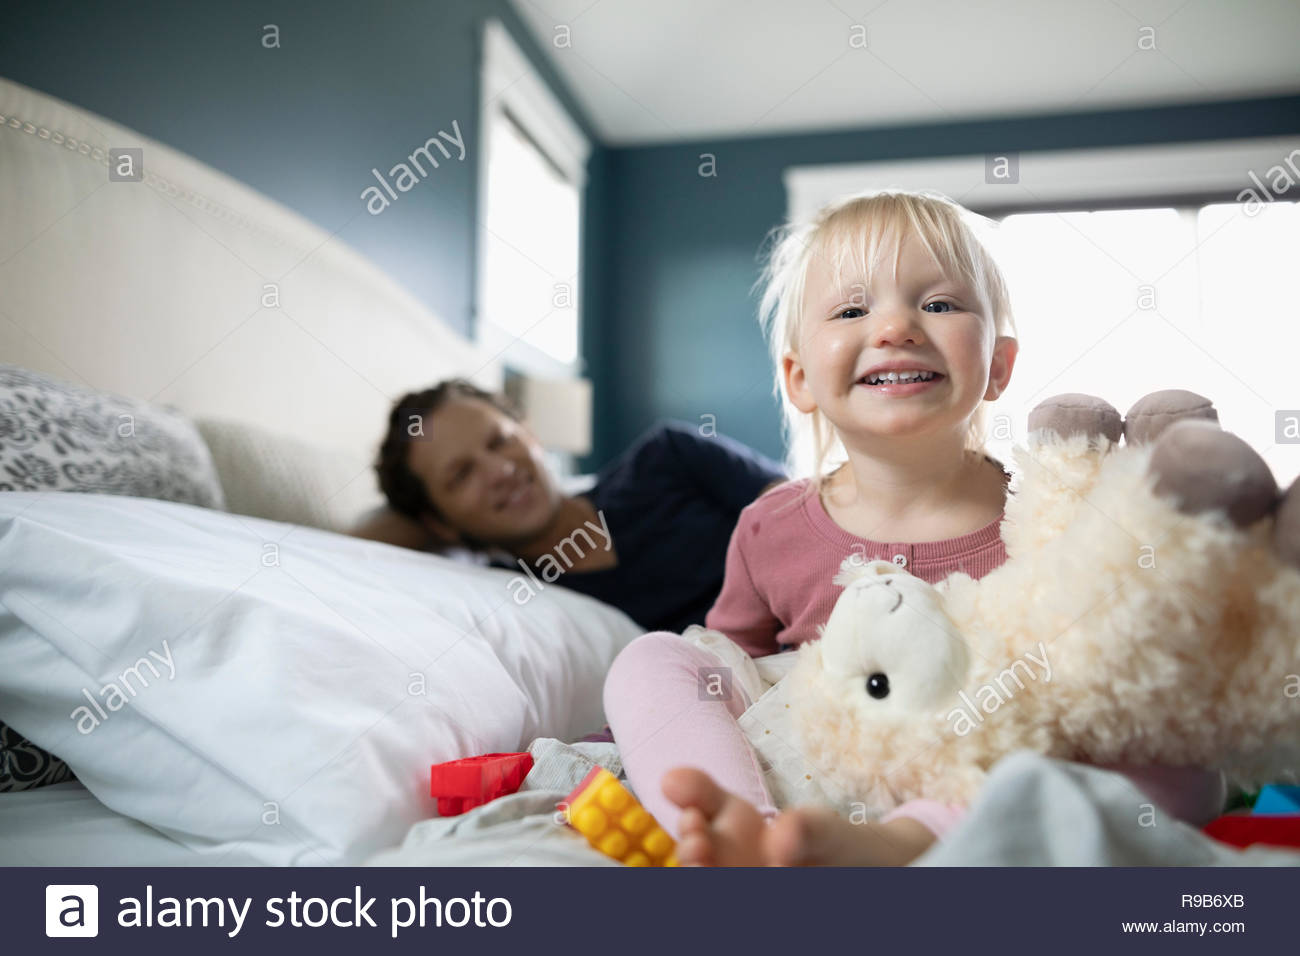 Portrait happy toddler girl playing with stuffed animal on bed Stock Photo